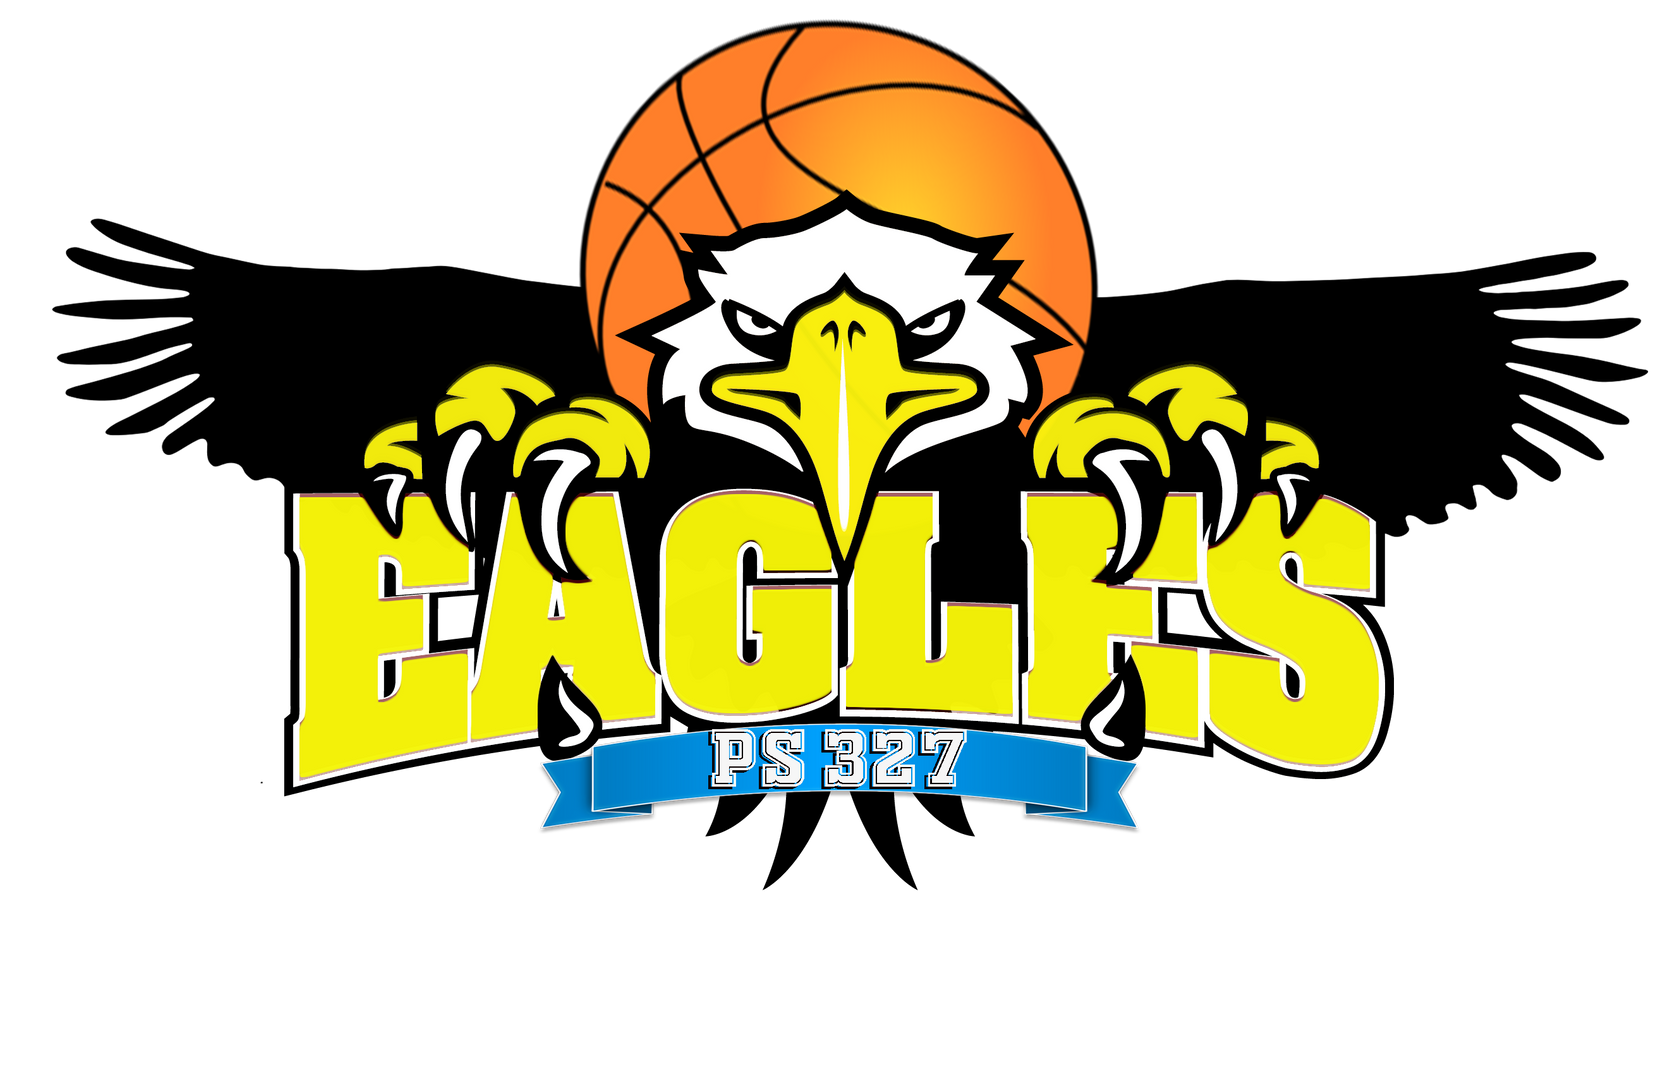 327 Eagles Basketball Team Logo